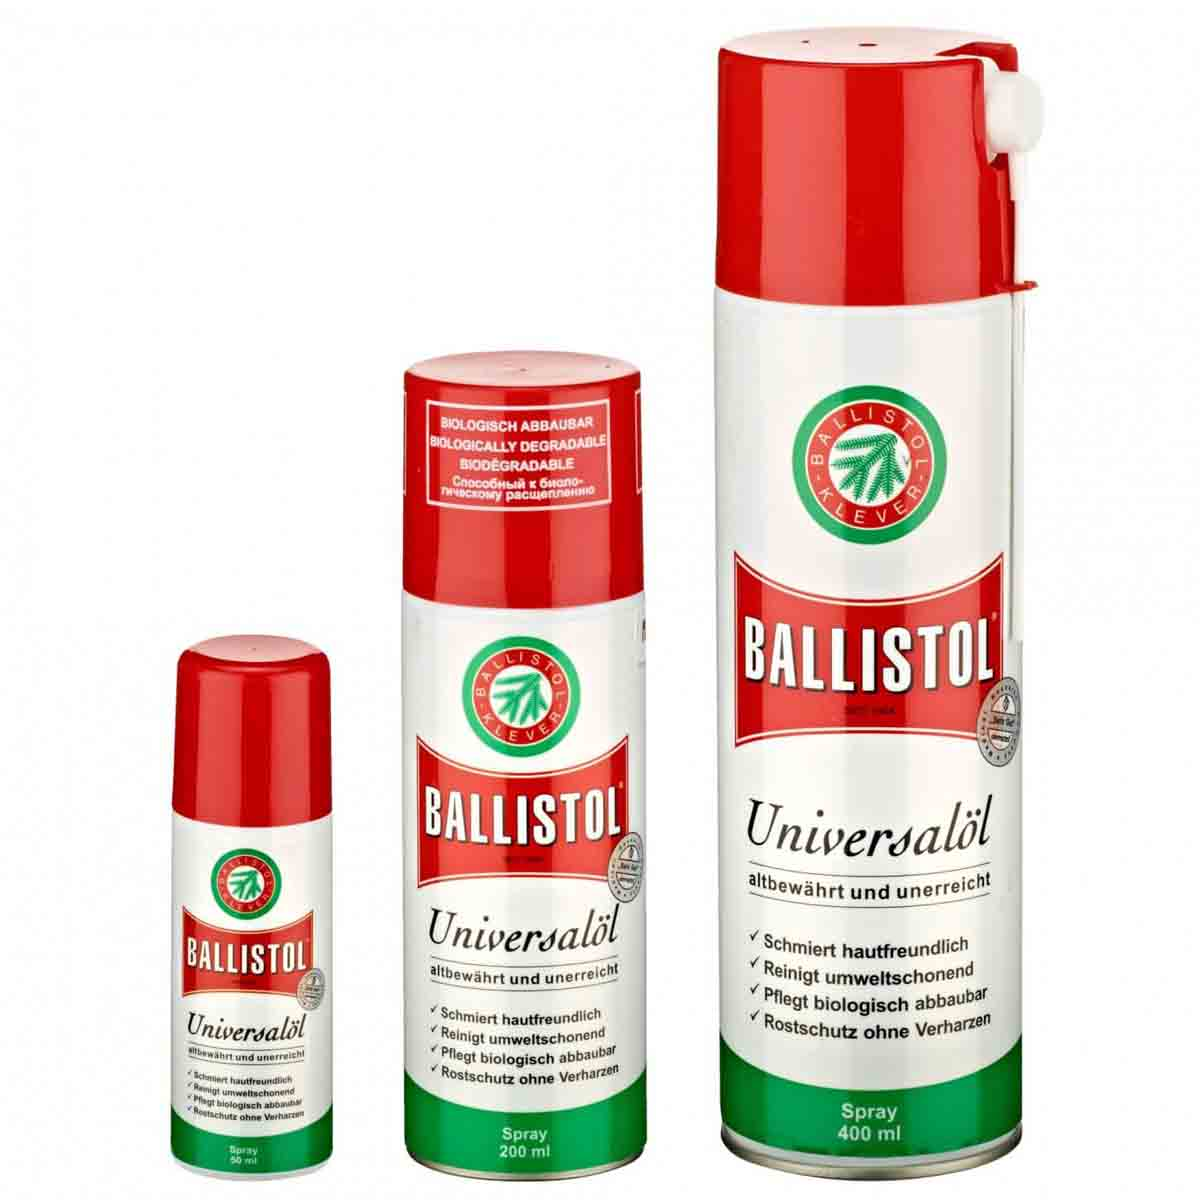 Ballistol- a Universal Oil with more than 1000 uses!